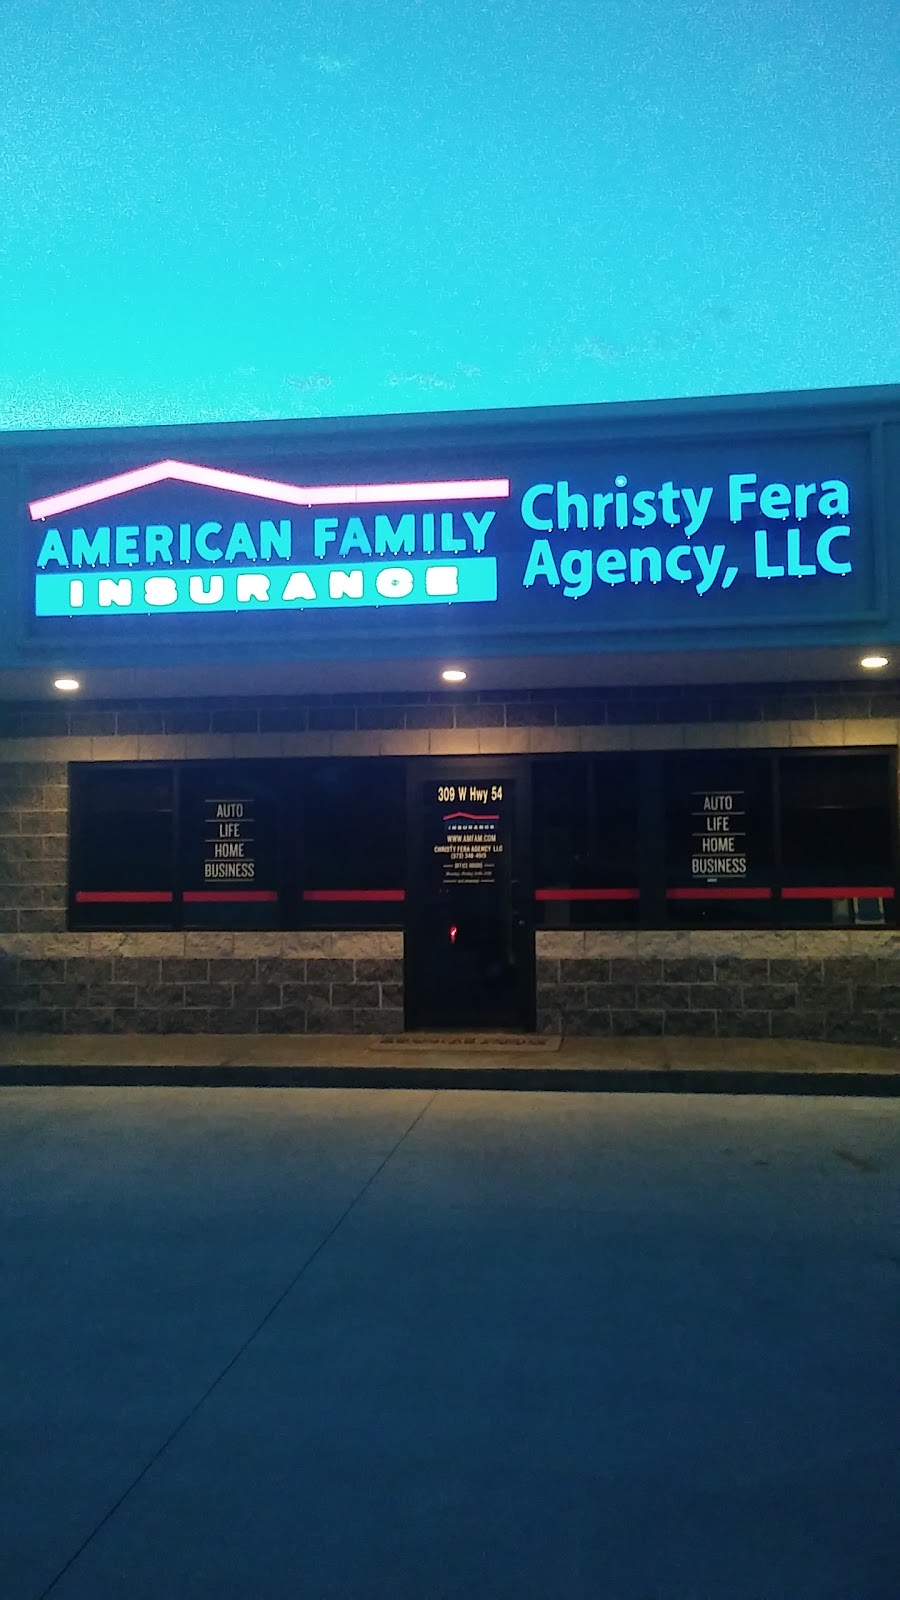 American Family Insurance - Christy Fera Agency LLC | insurance agency | 309 US-54, Camdenton, MO 65020, USA | 5733464515 OR +1 573-346-4515